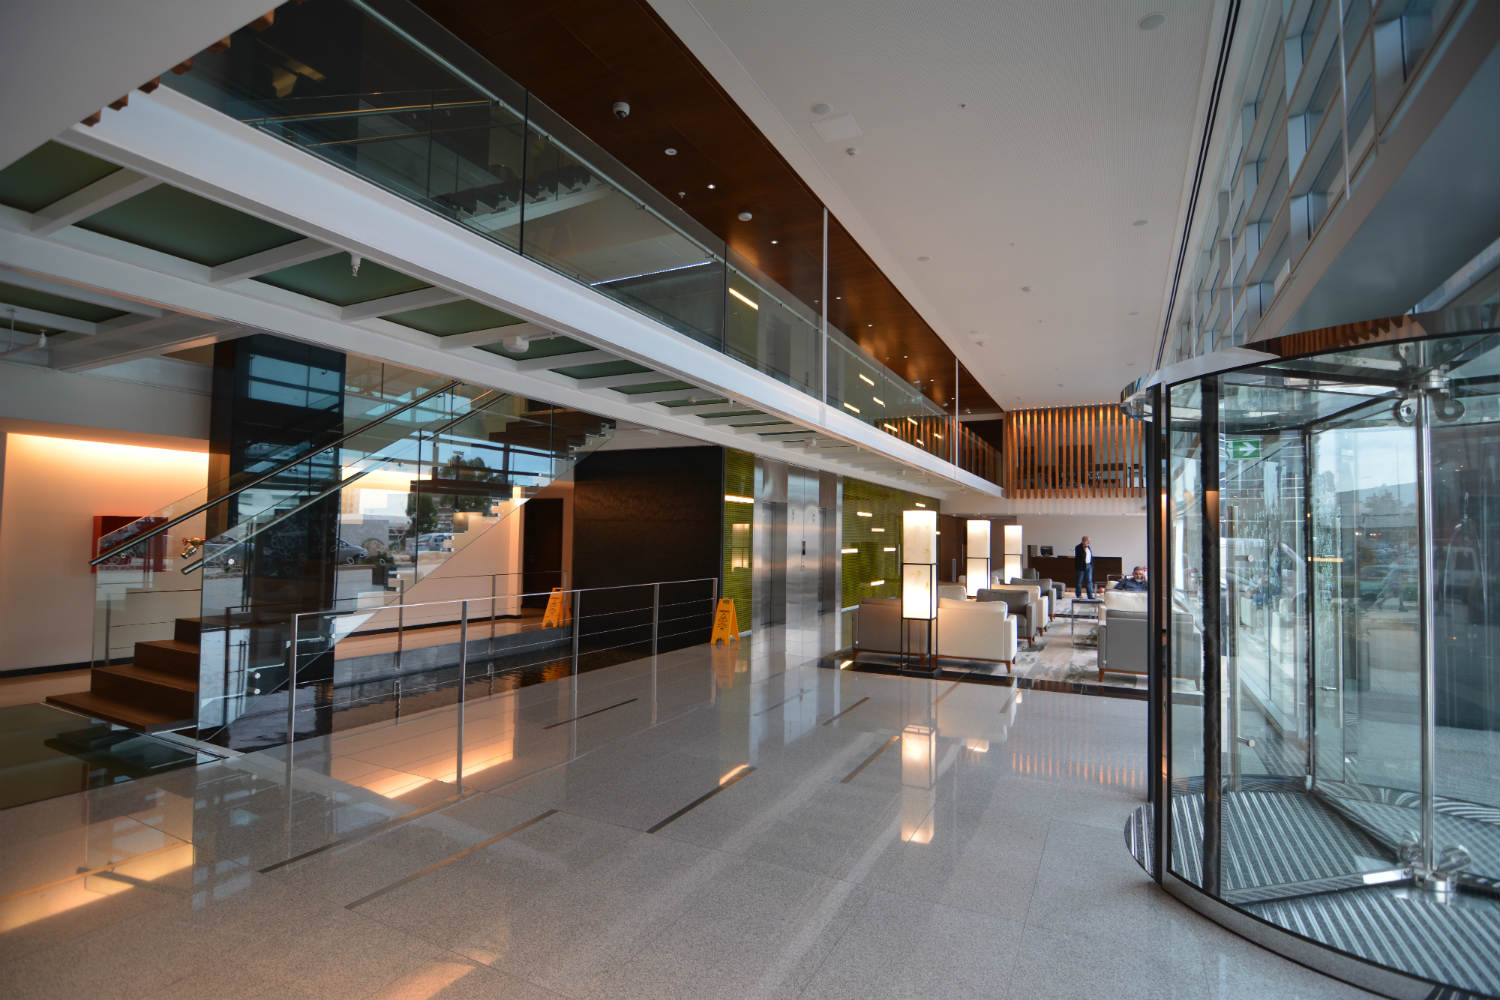 Hilton Garden Inn in Montevideo, Uruguay. Invisible acoustics designed and install by WSDG - WSDG Latin, Sergio Molho and Silvia Molho. Lobby 2